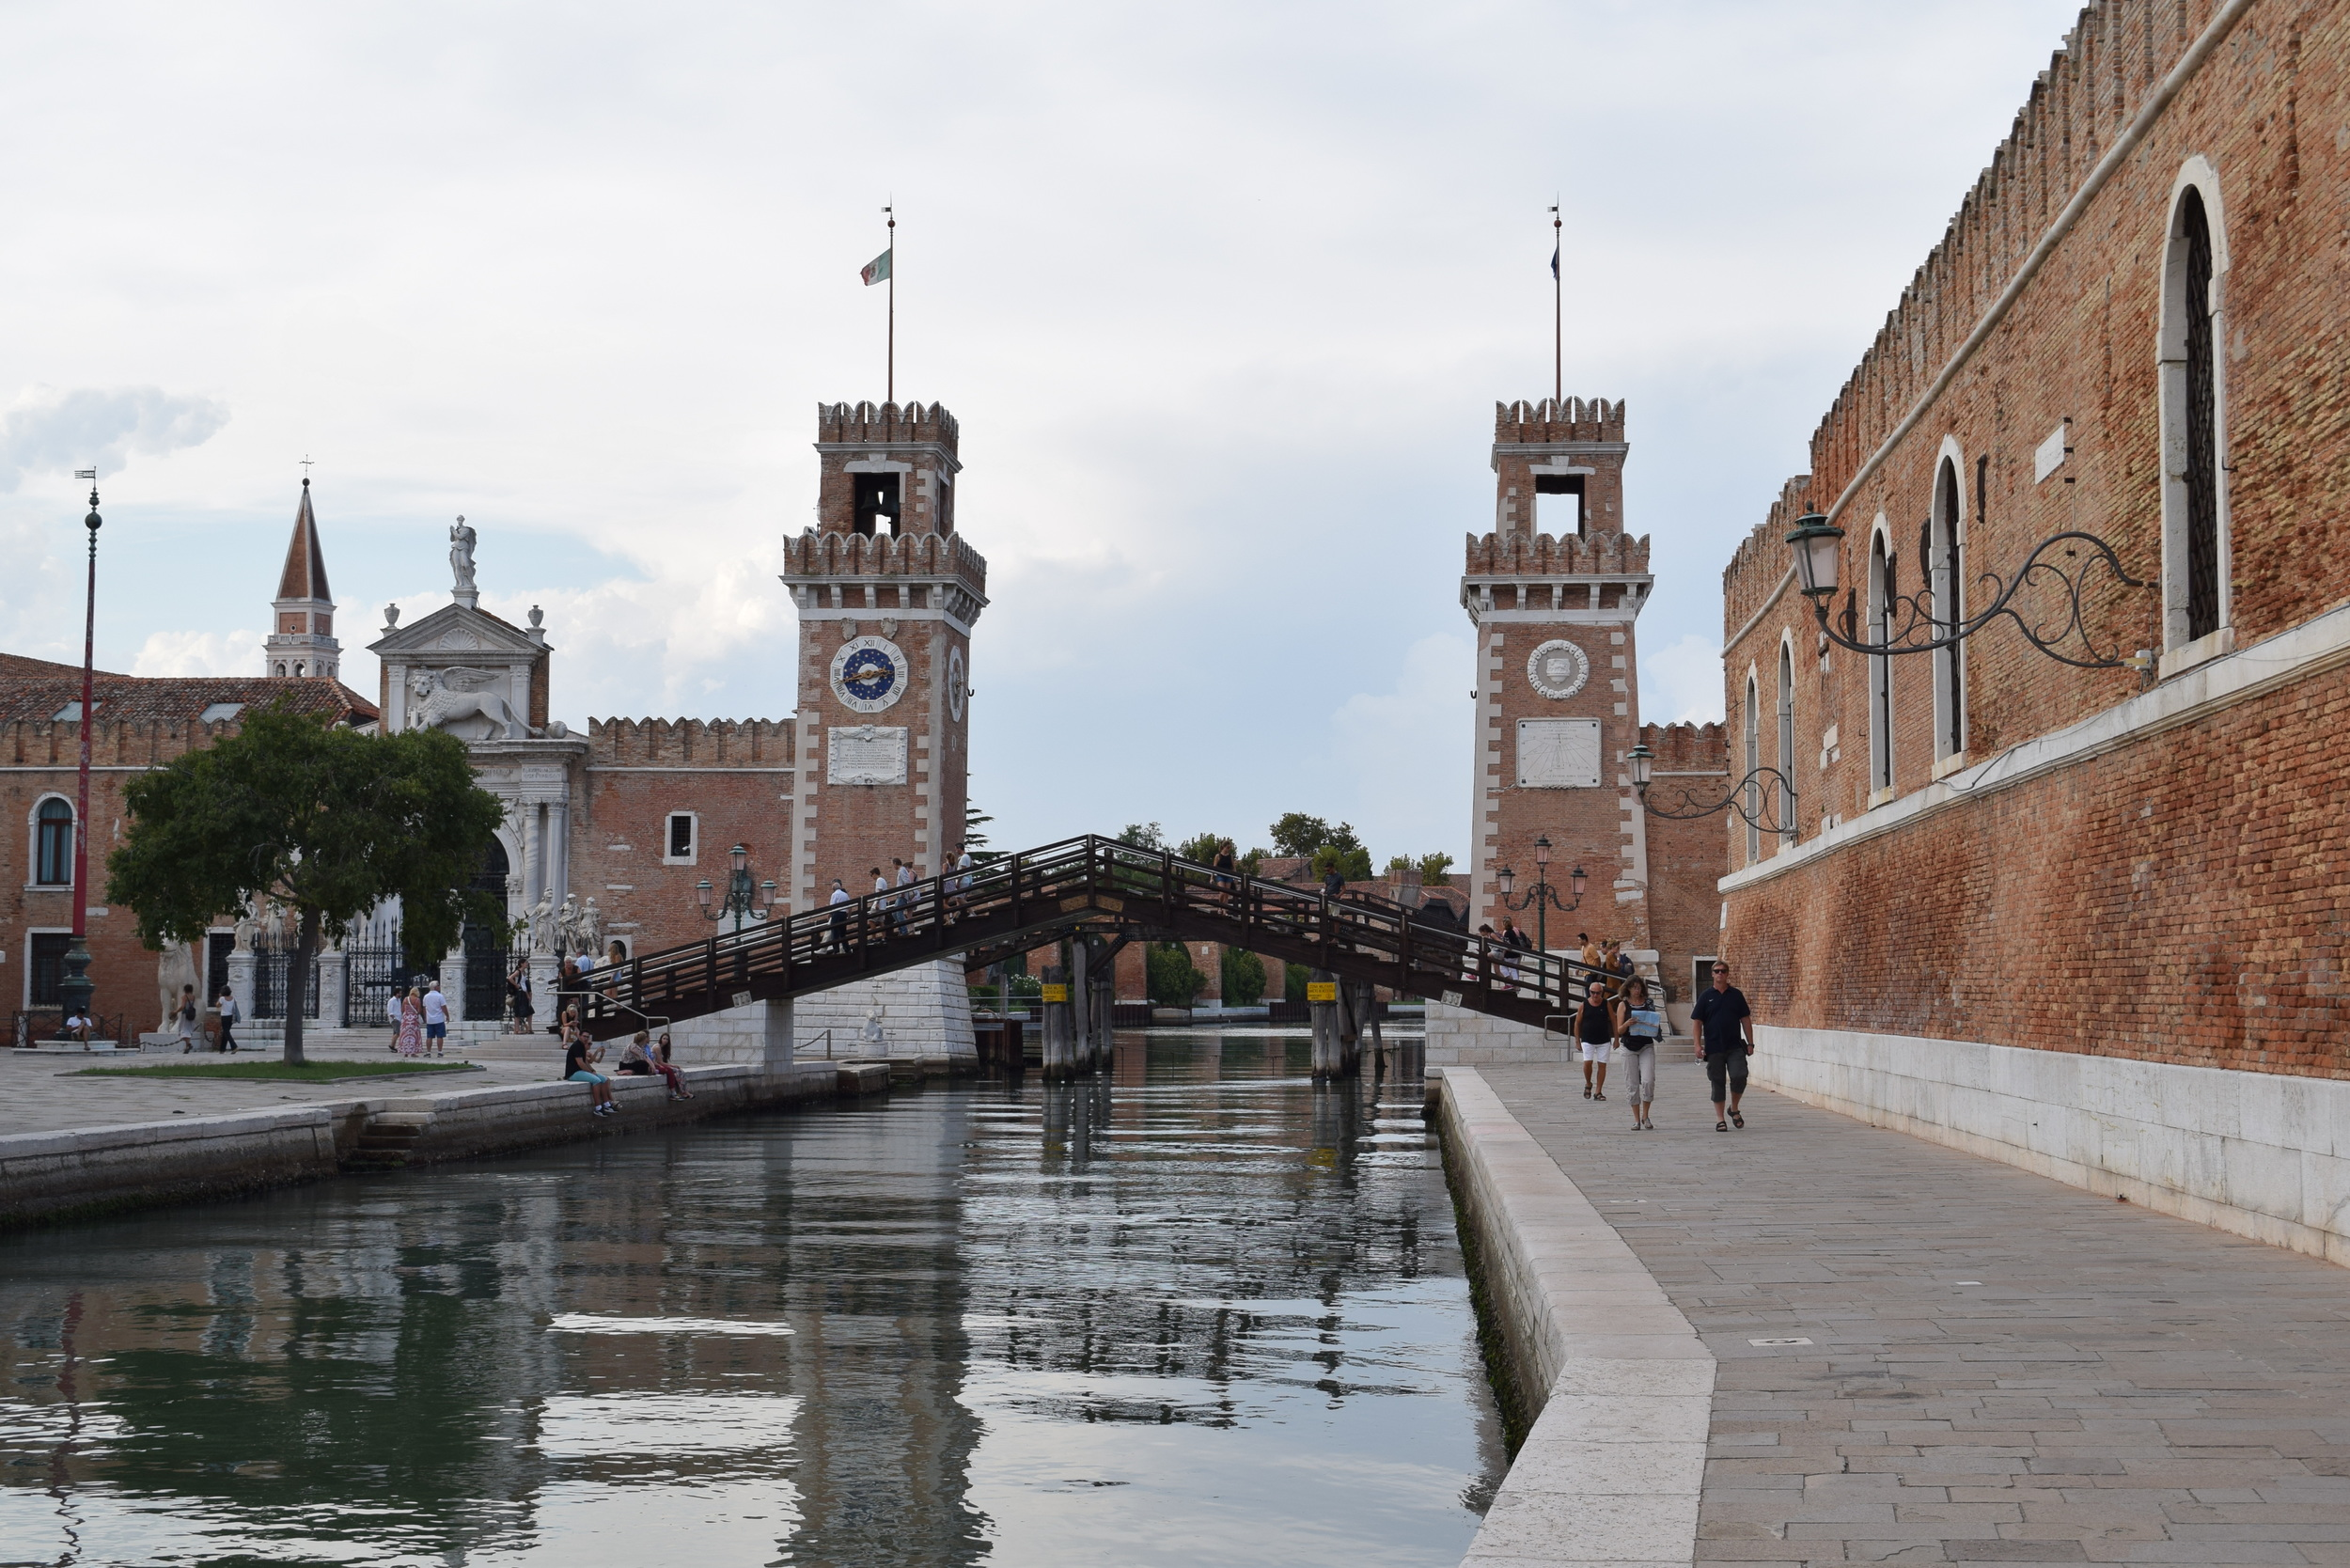 The Venetian Arsenal was once a major source of the city's power